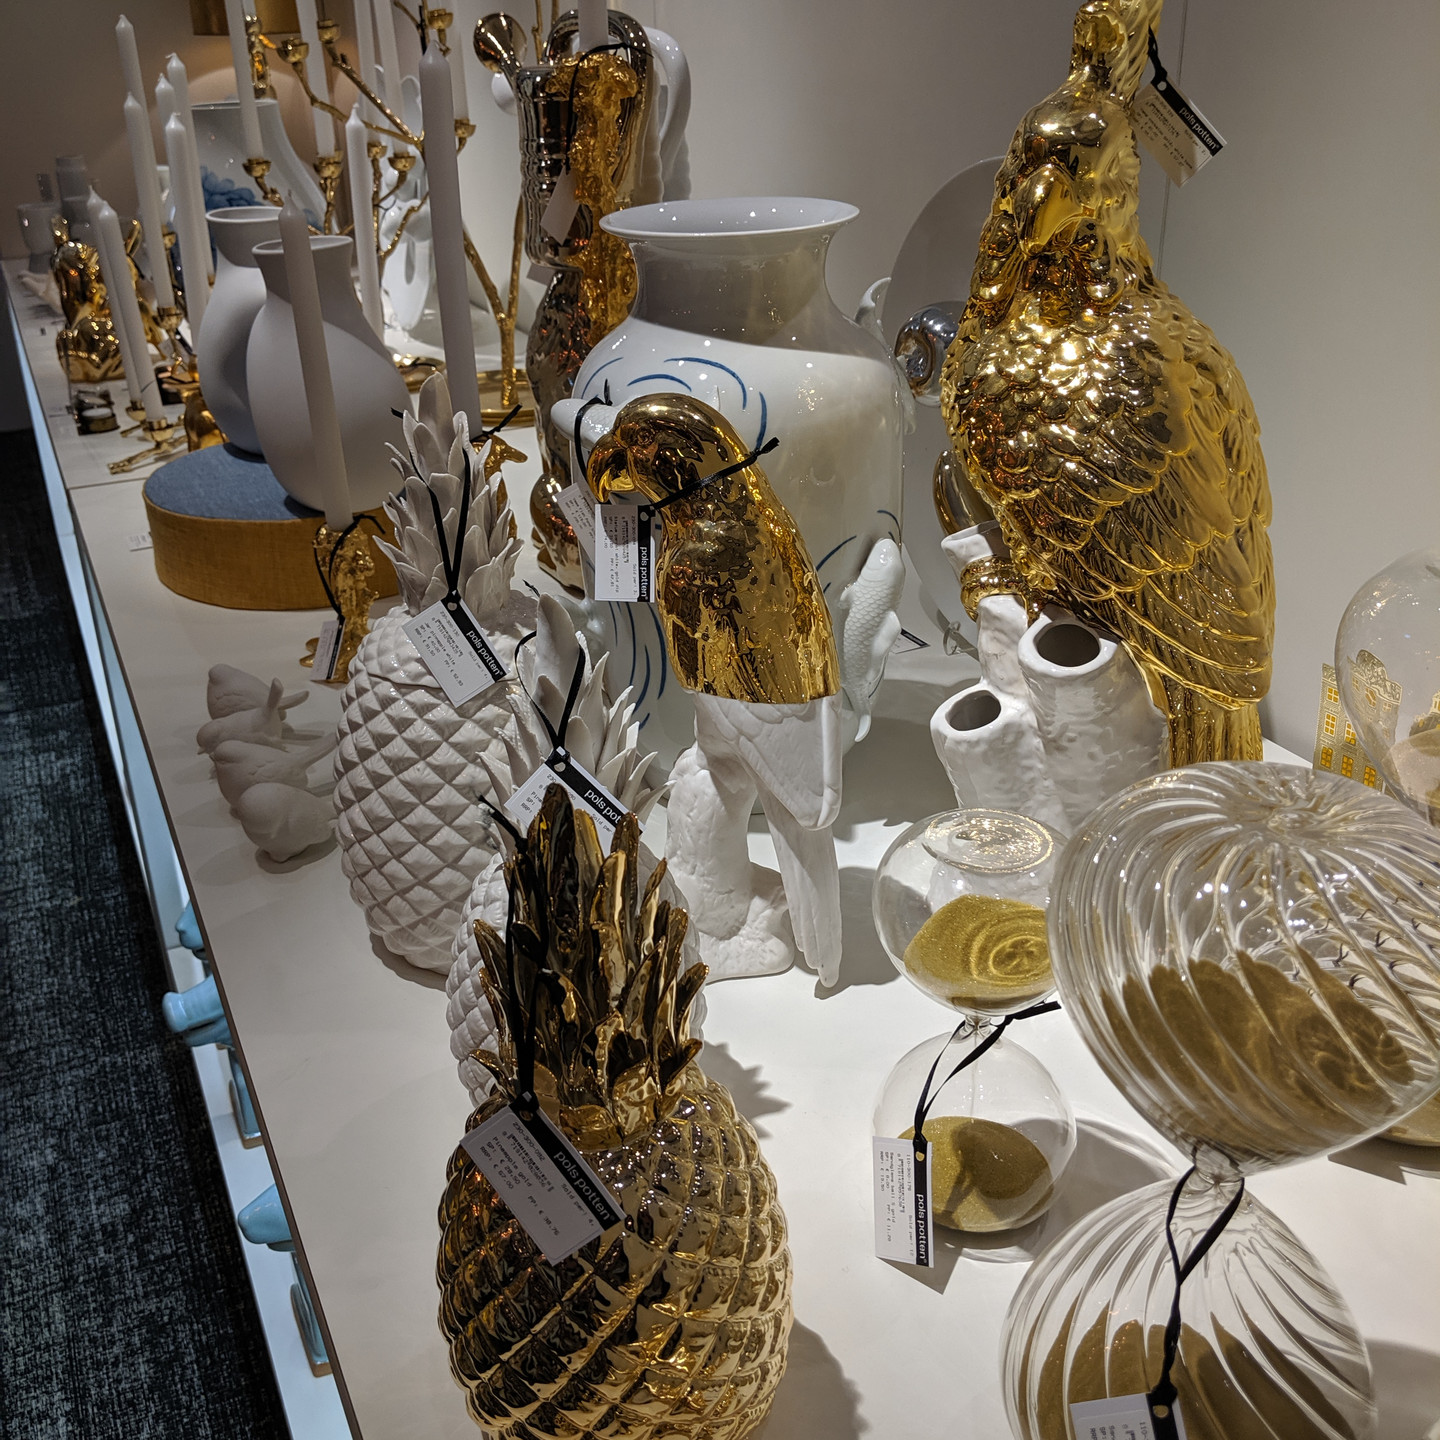 Shelf of white and gold decorative accessories